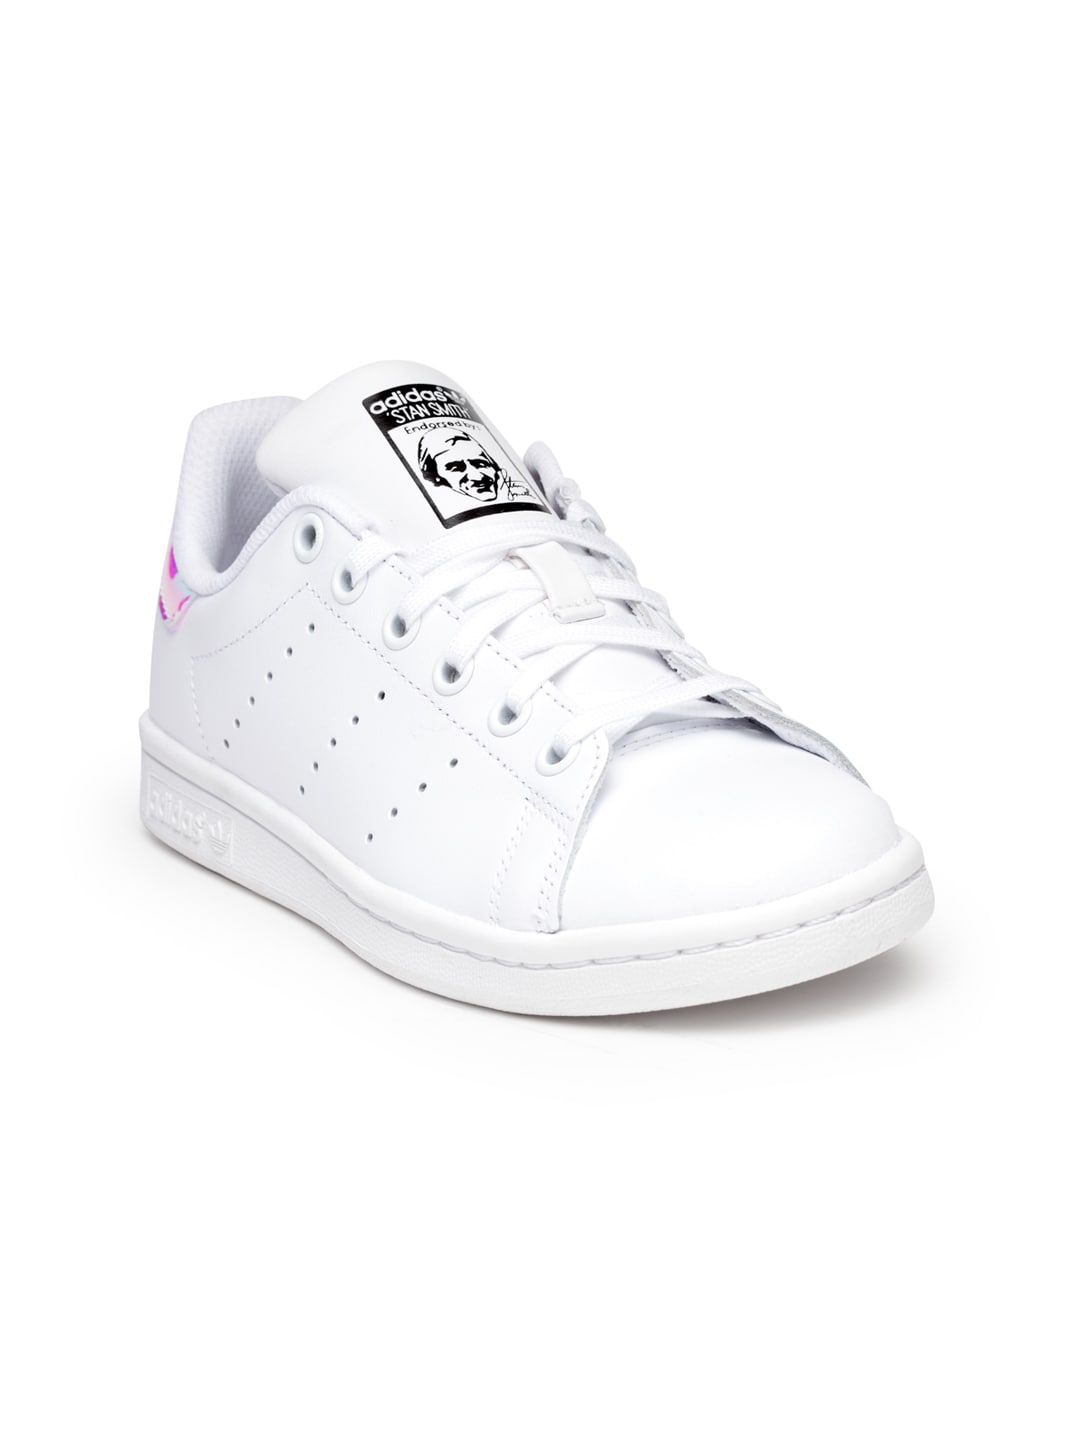 sale retailer 44fda 47ddf Kids Shoes - Buy Shoes for Kids Online in India  Myntra